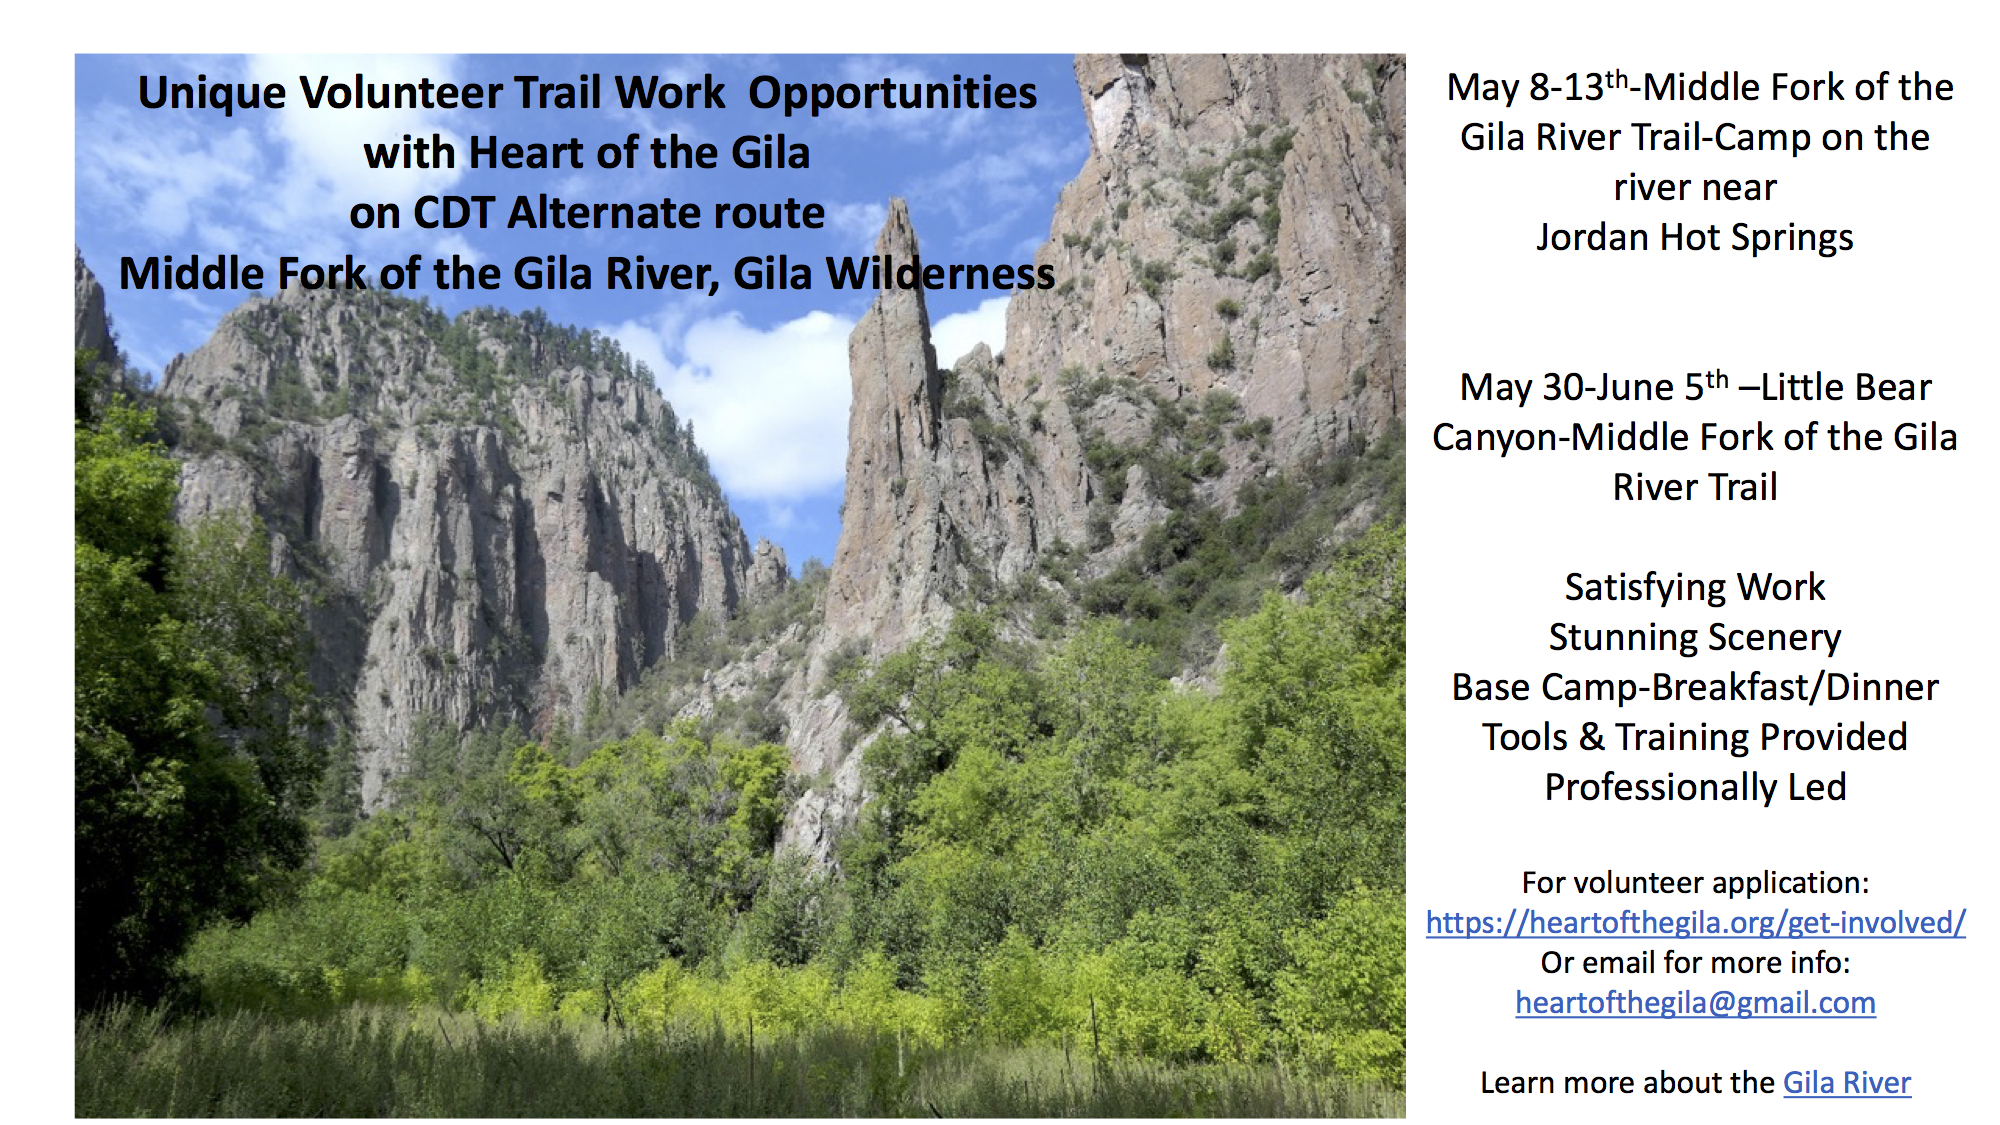 Trail Work Opportunities on CDT Alternate Route